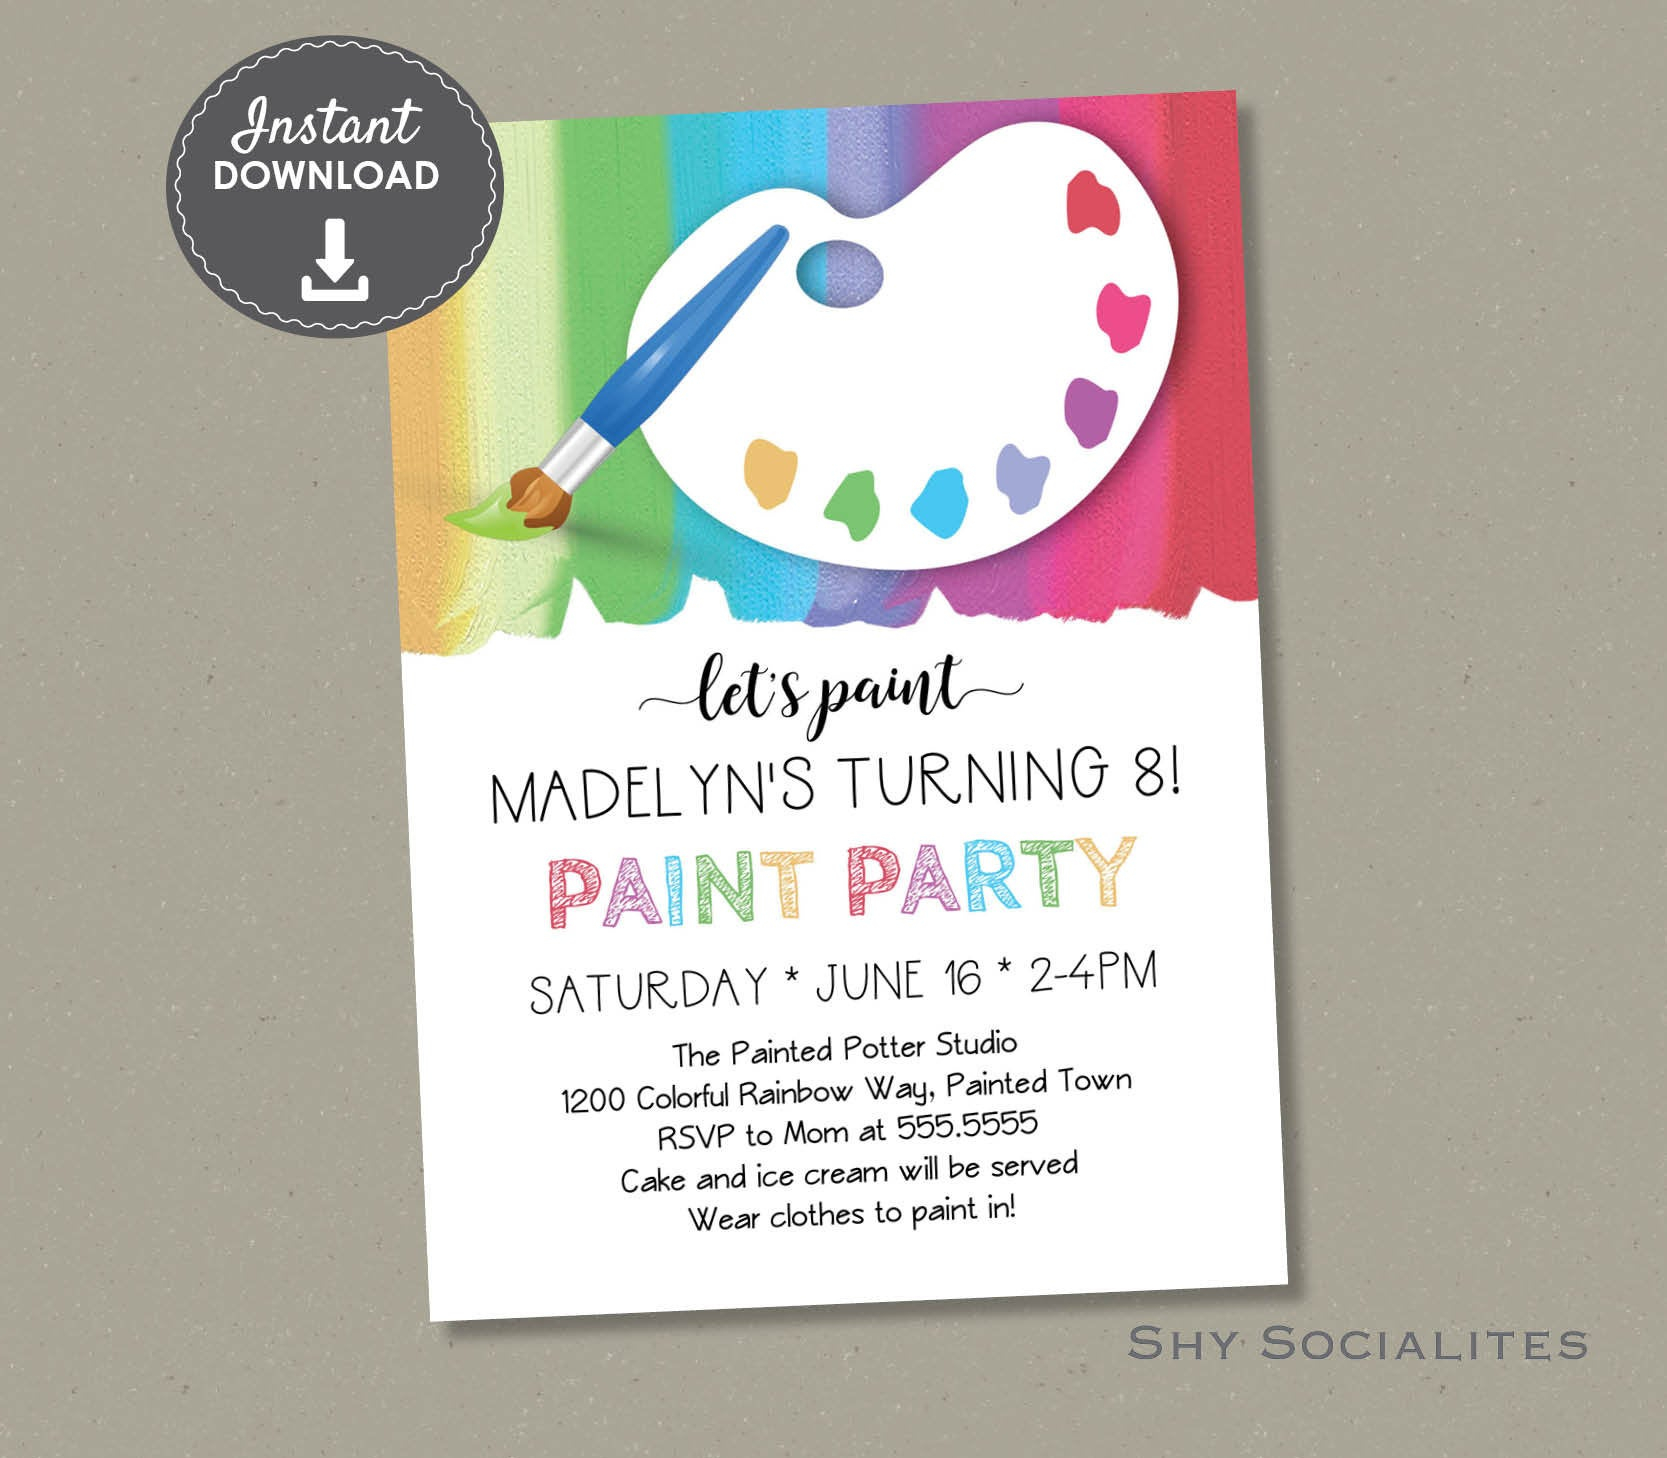 Paint Party Invitation Art Party Pottery Painting Birthday Etsy pertaining to size 1667 X 1458